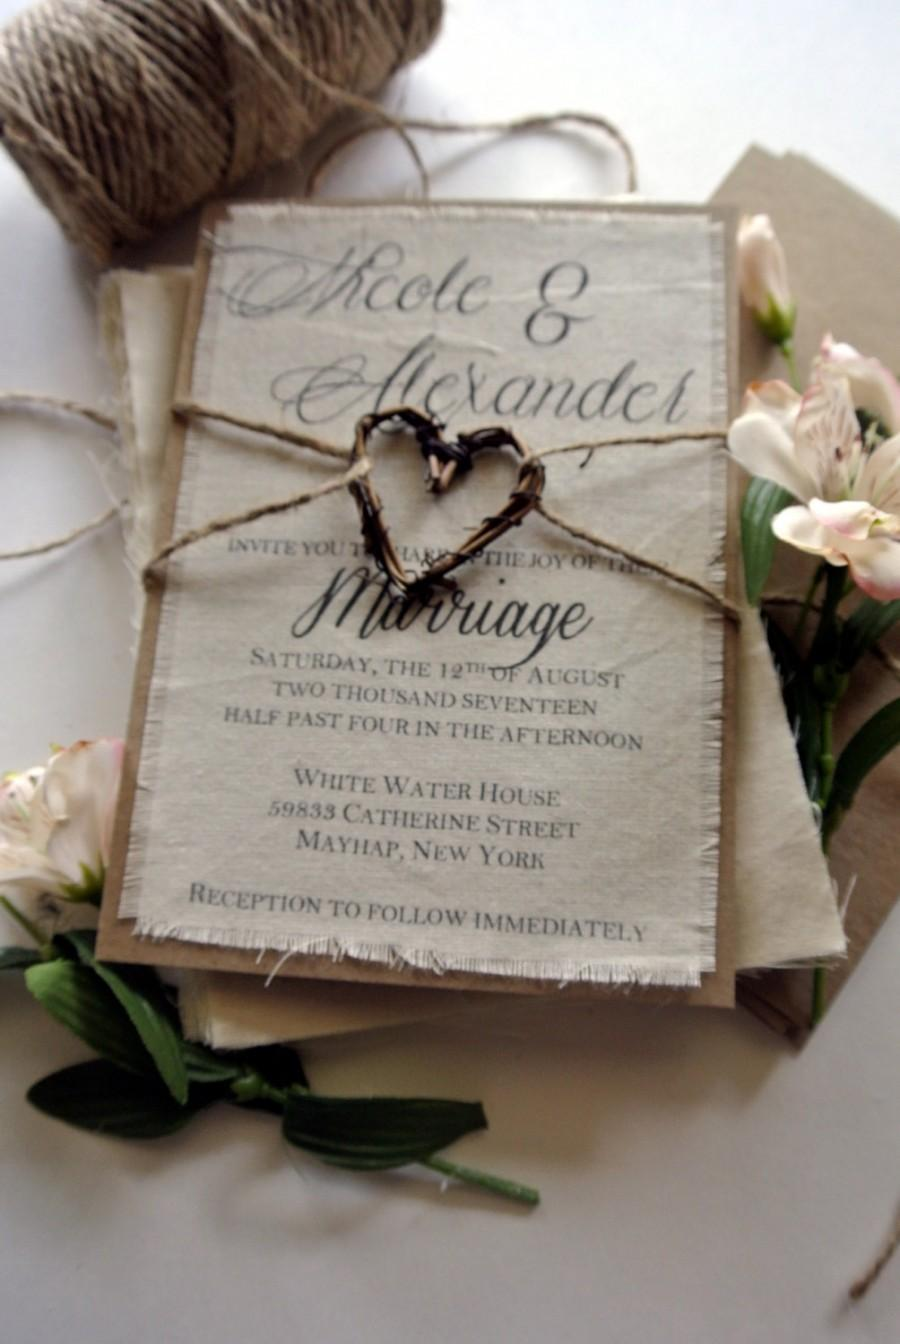 Wedding - Rustic Wedding Invitation Boho Script Twine Fabric Invitation Grapevine Heart Fall Wedding Ideas